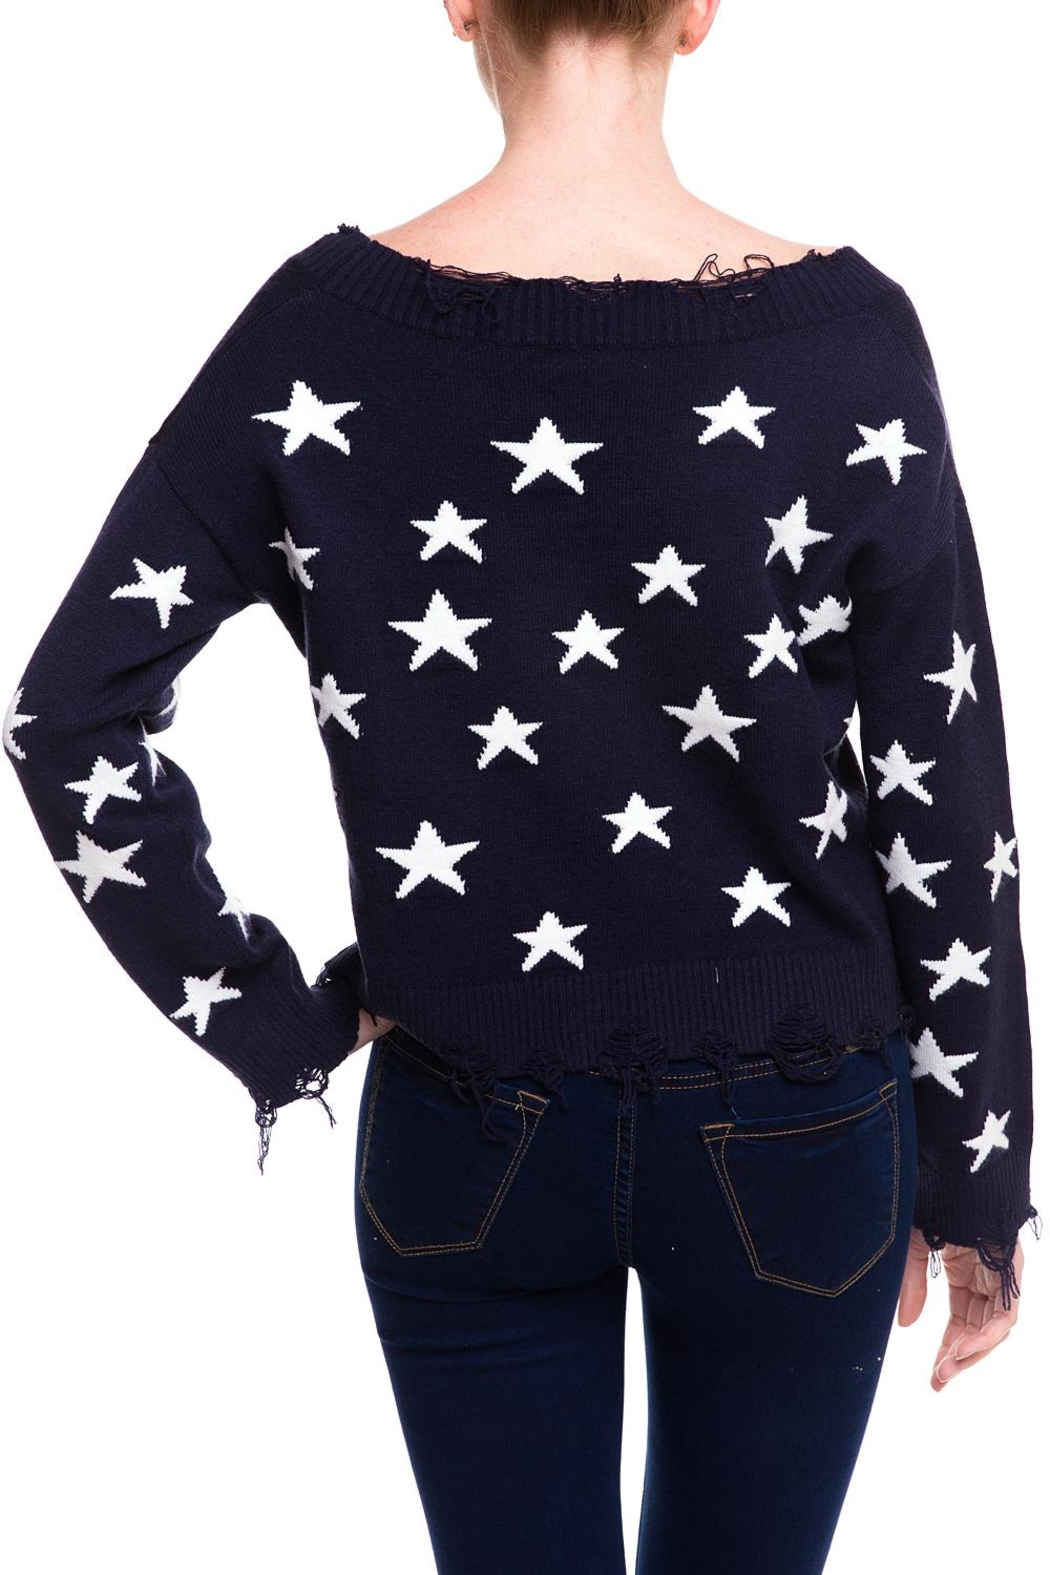 Honey Punch Distressed Star Sweater - Back Cropped Image